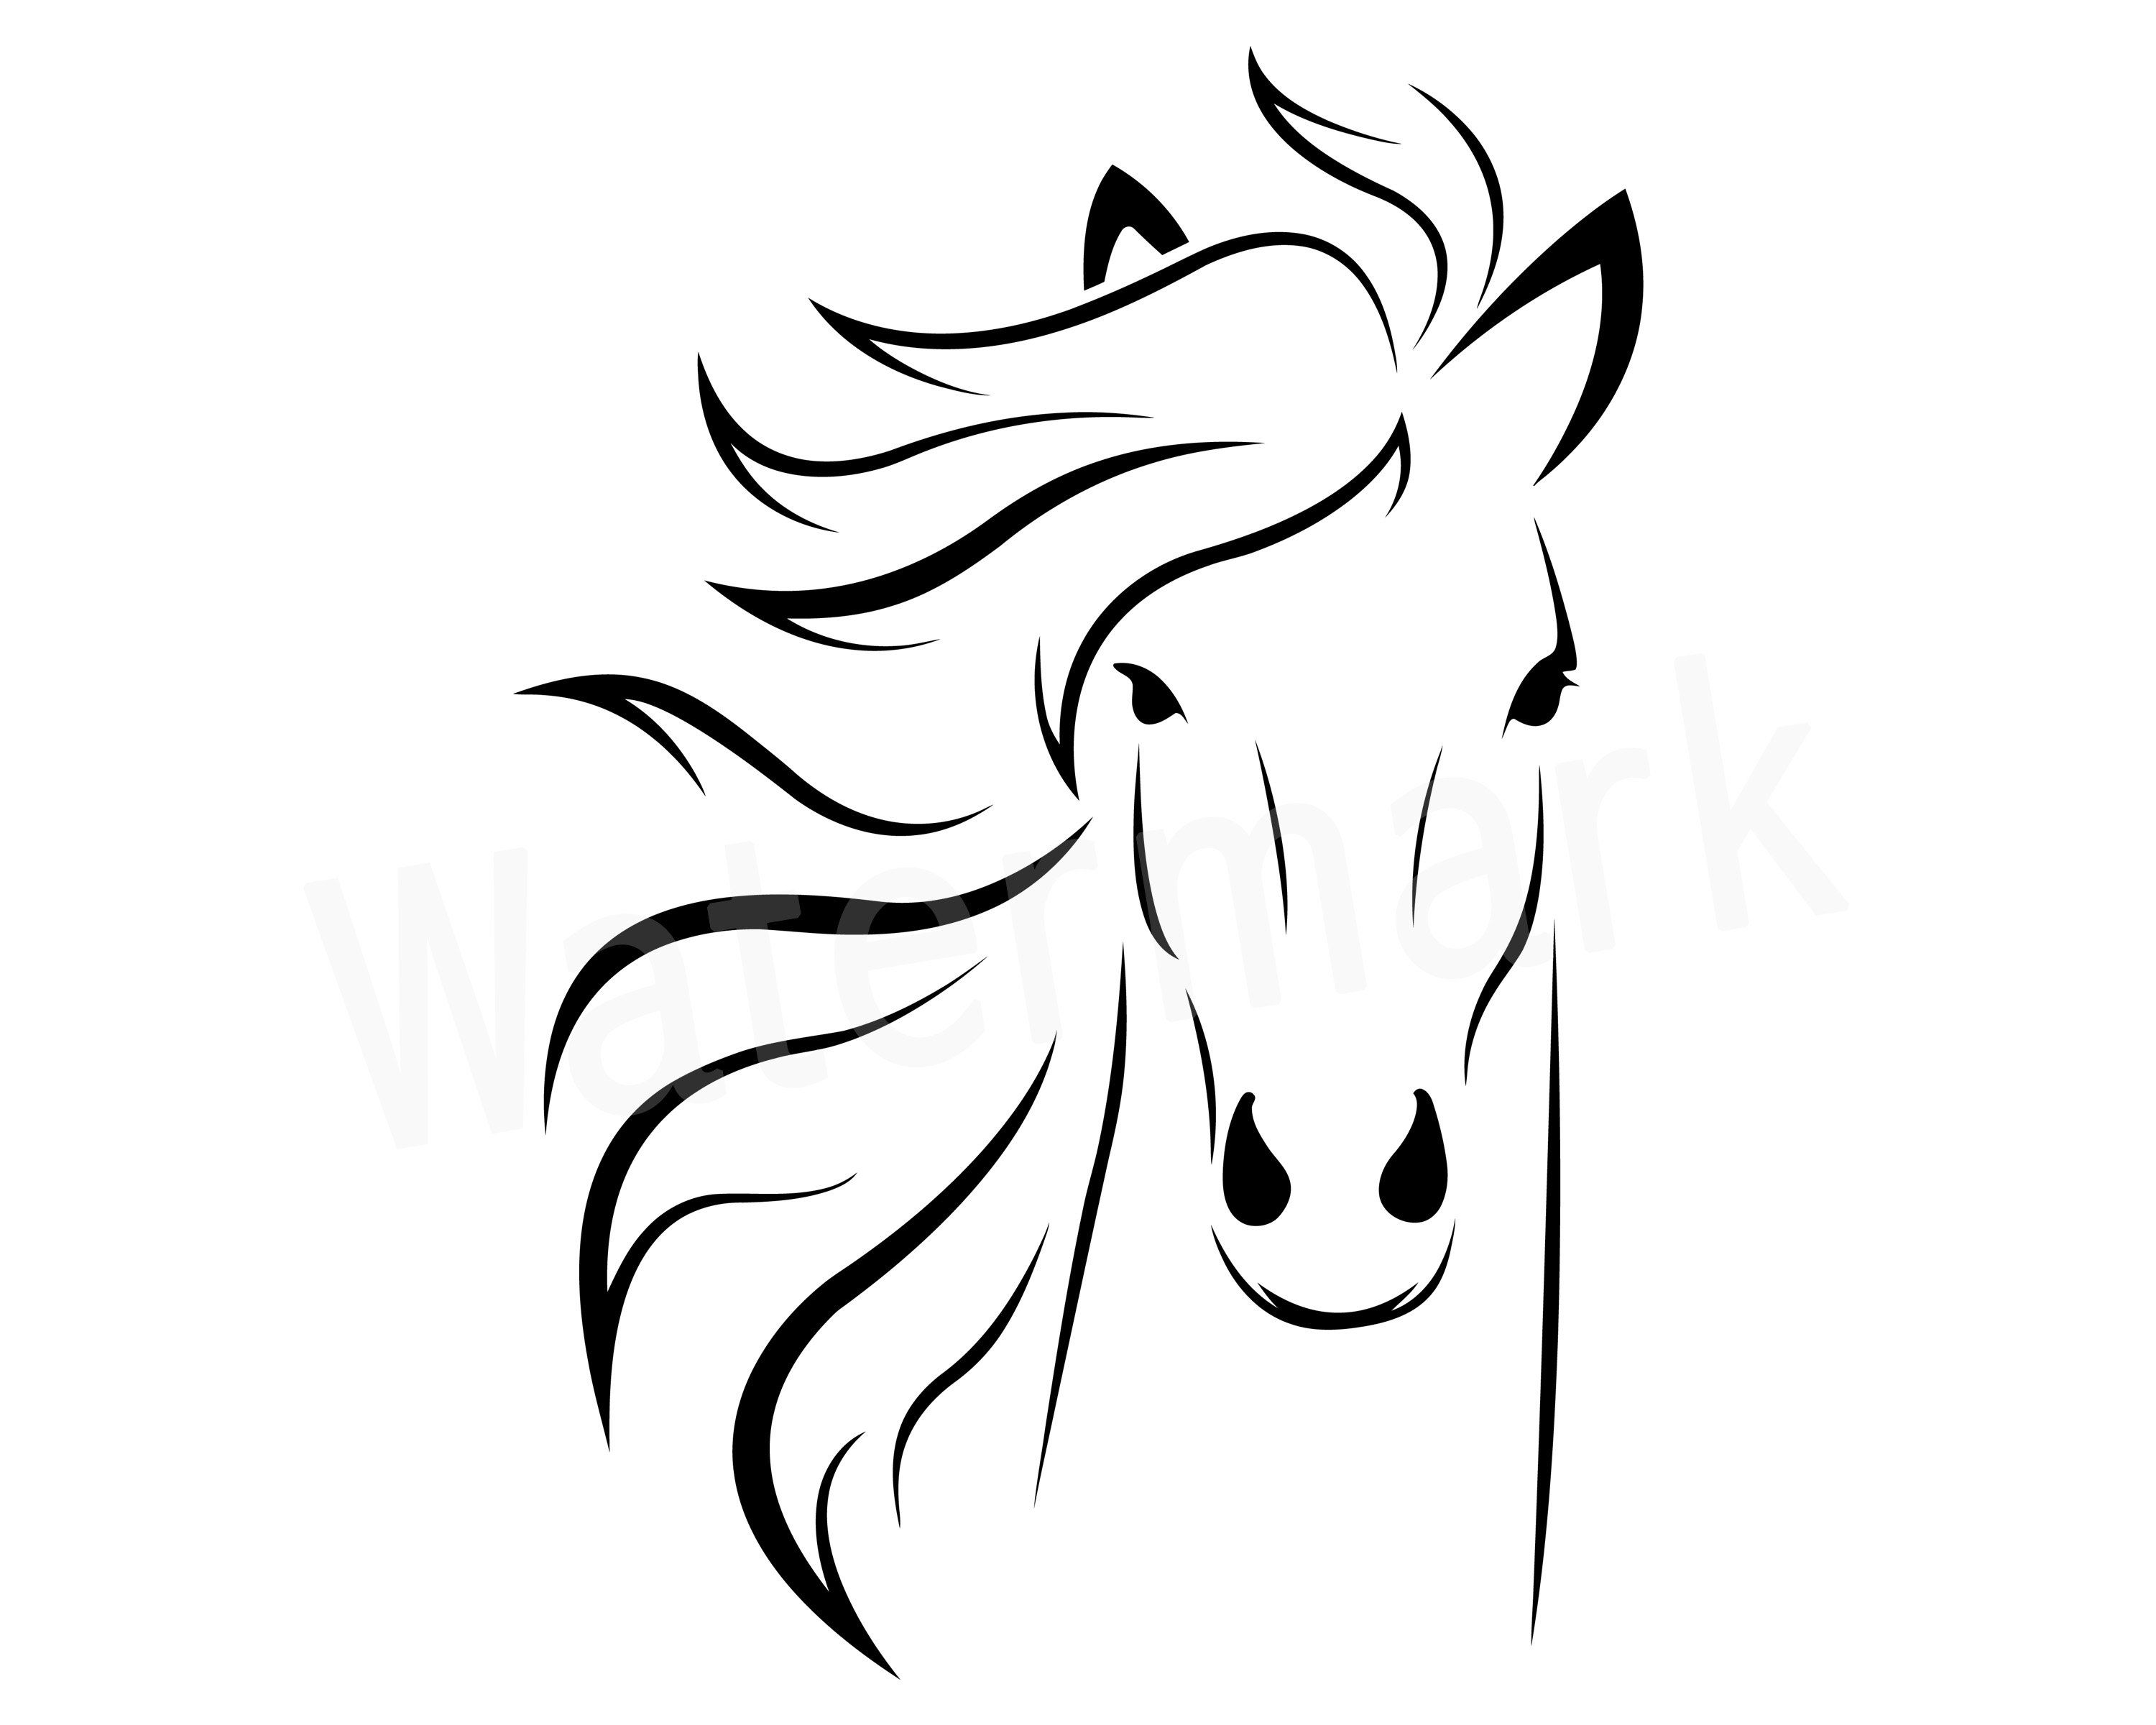 Horse vector clipart vector free stock Horse Head SVG, Pony SVG, Horse Vector, Horse Decal, Horse ... vector free stock